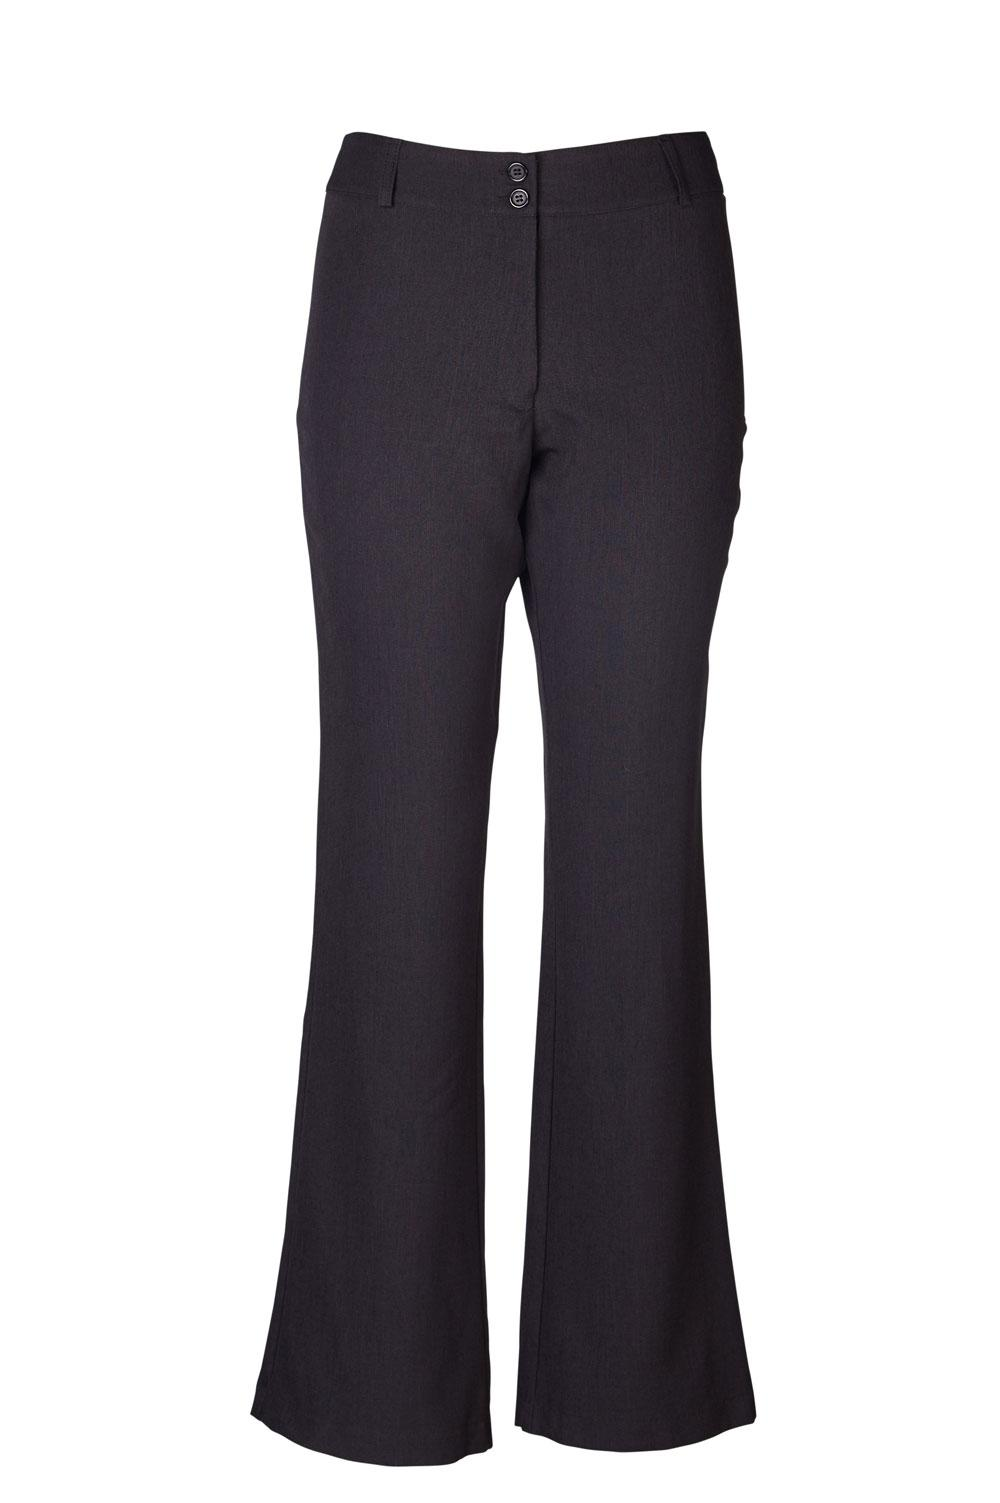 Beverly Bootleg Slacks - Cationic Charcoal